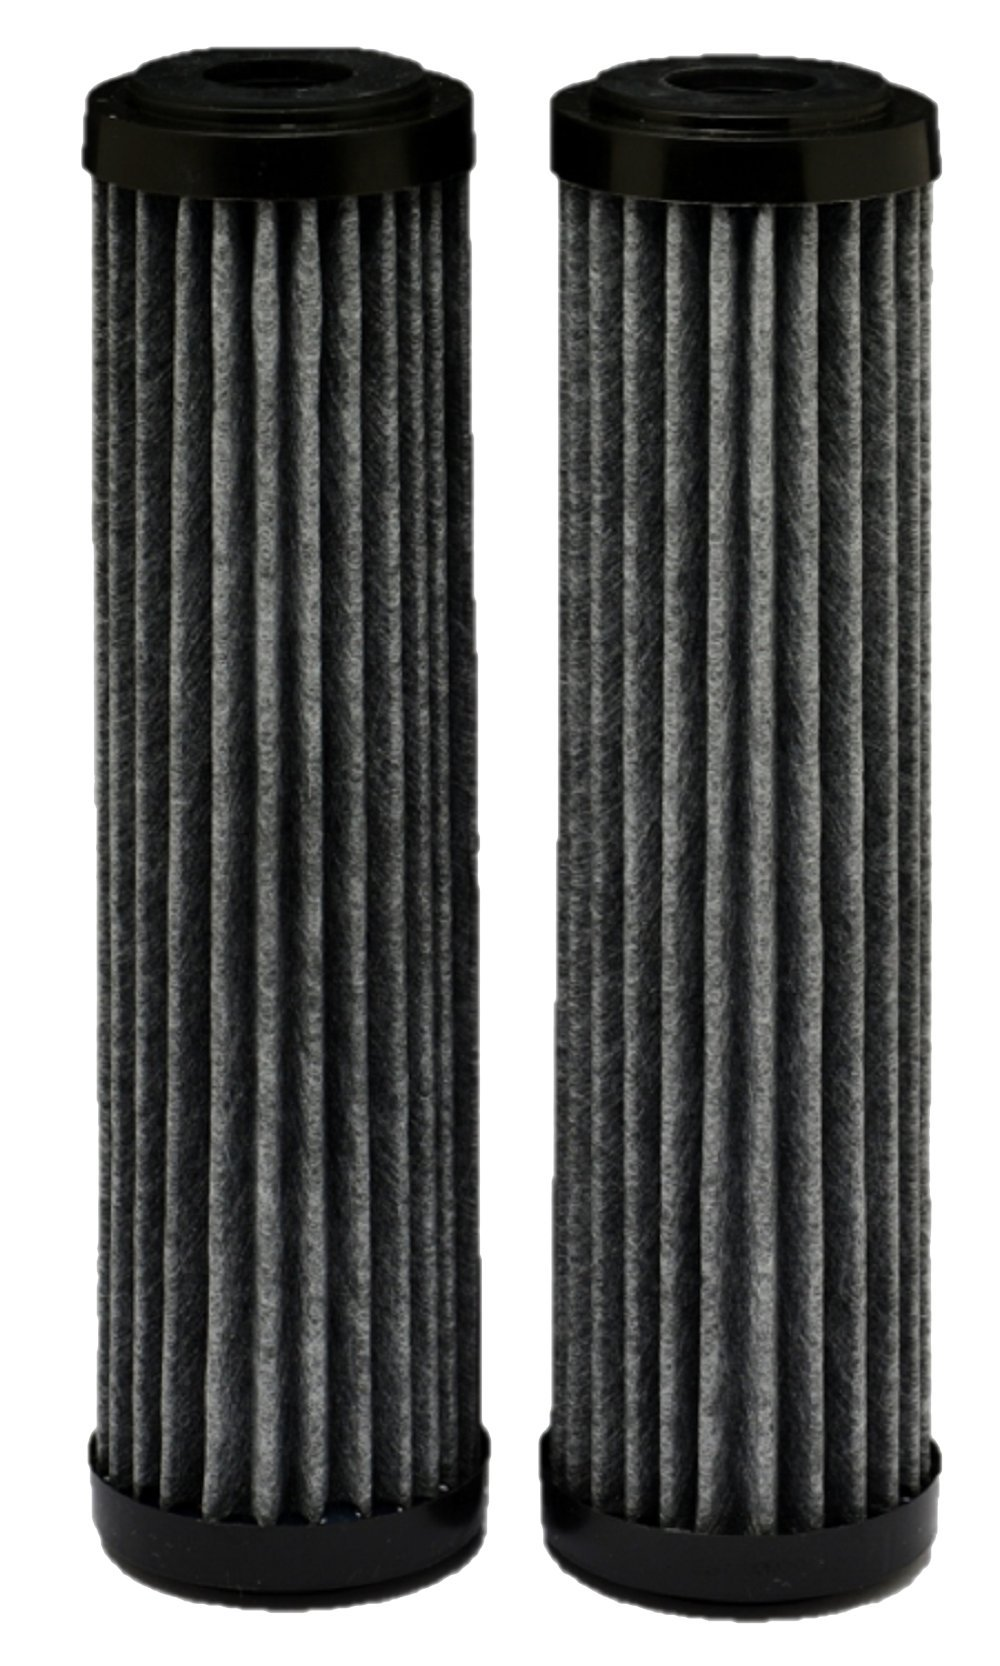 Whirlpool WHA2FF5 Standard Capacity Premium Carbon Whole Home Water Filter - 2 Pack